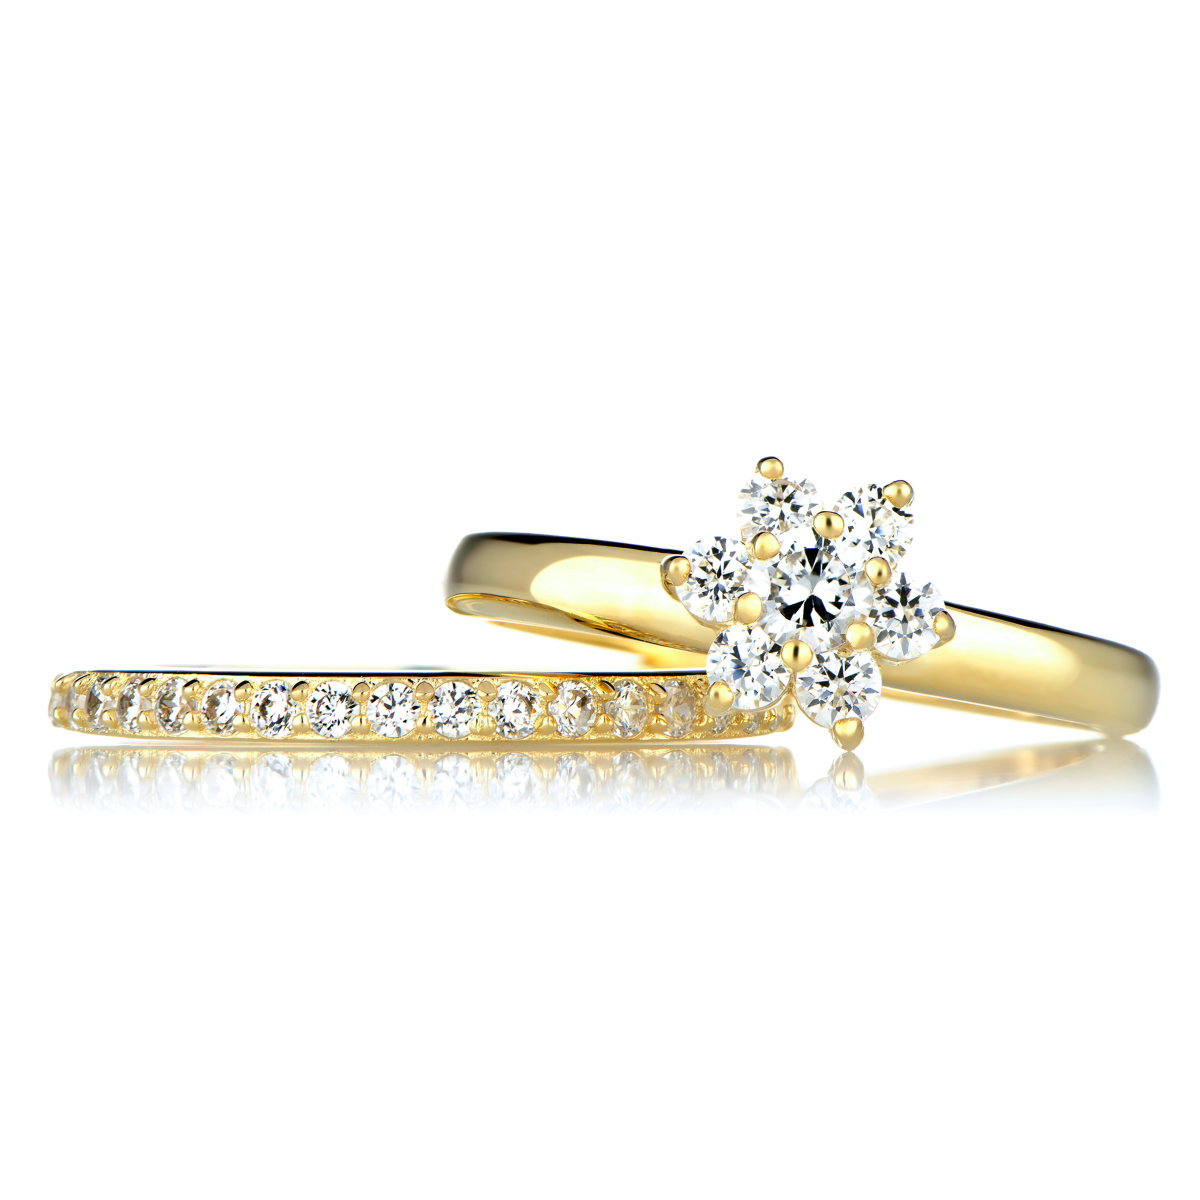 Sageu0027s Goldtone Cz Flower Wedding Ring Set